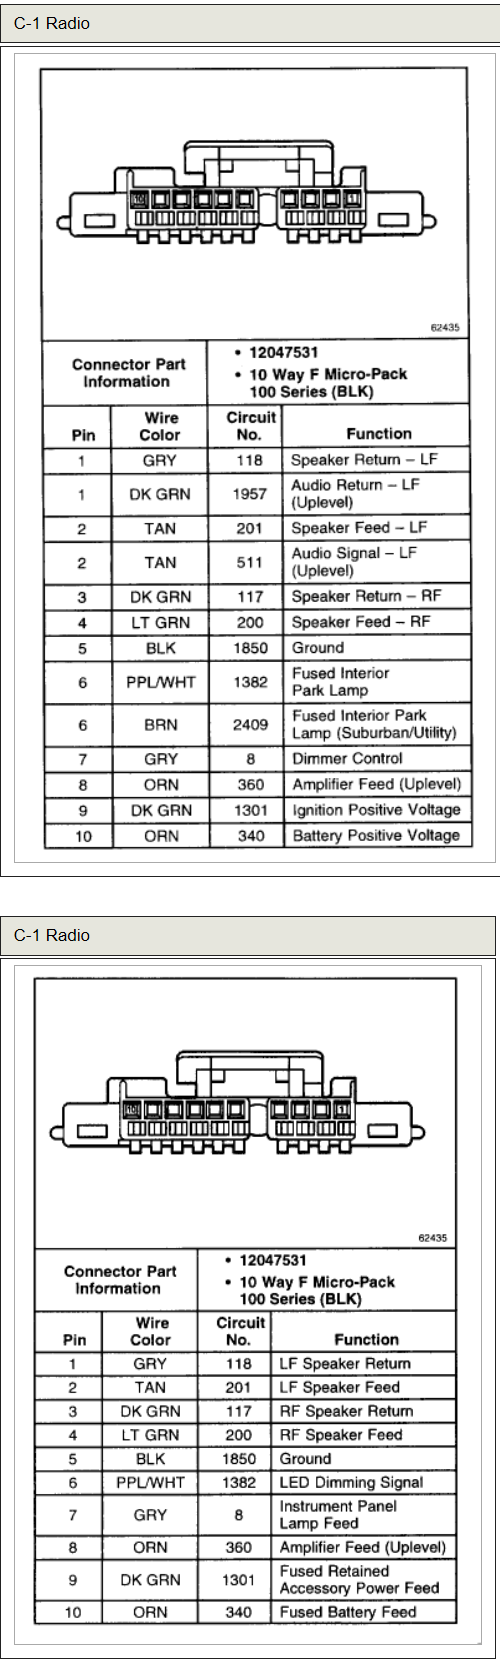 chevrolet car radio stereo audio wiring diagram autoradio connector rh tehnomagazin com chevy 305 distributor diagram chevrolet car radio stereo audio wiring diagram autoradio connector wire installation schematic schema esquema de conexiones anschlusskammern konektor